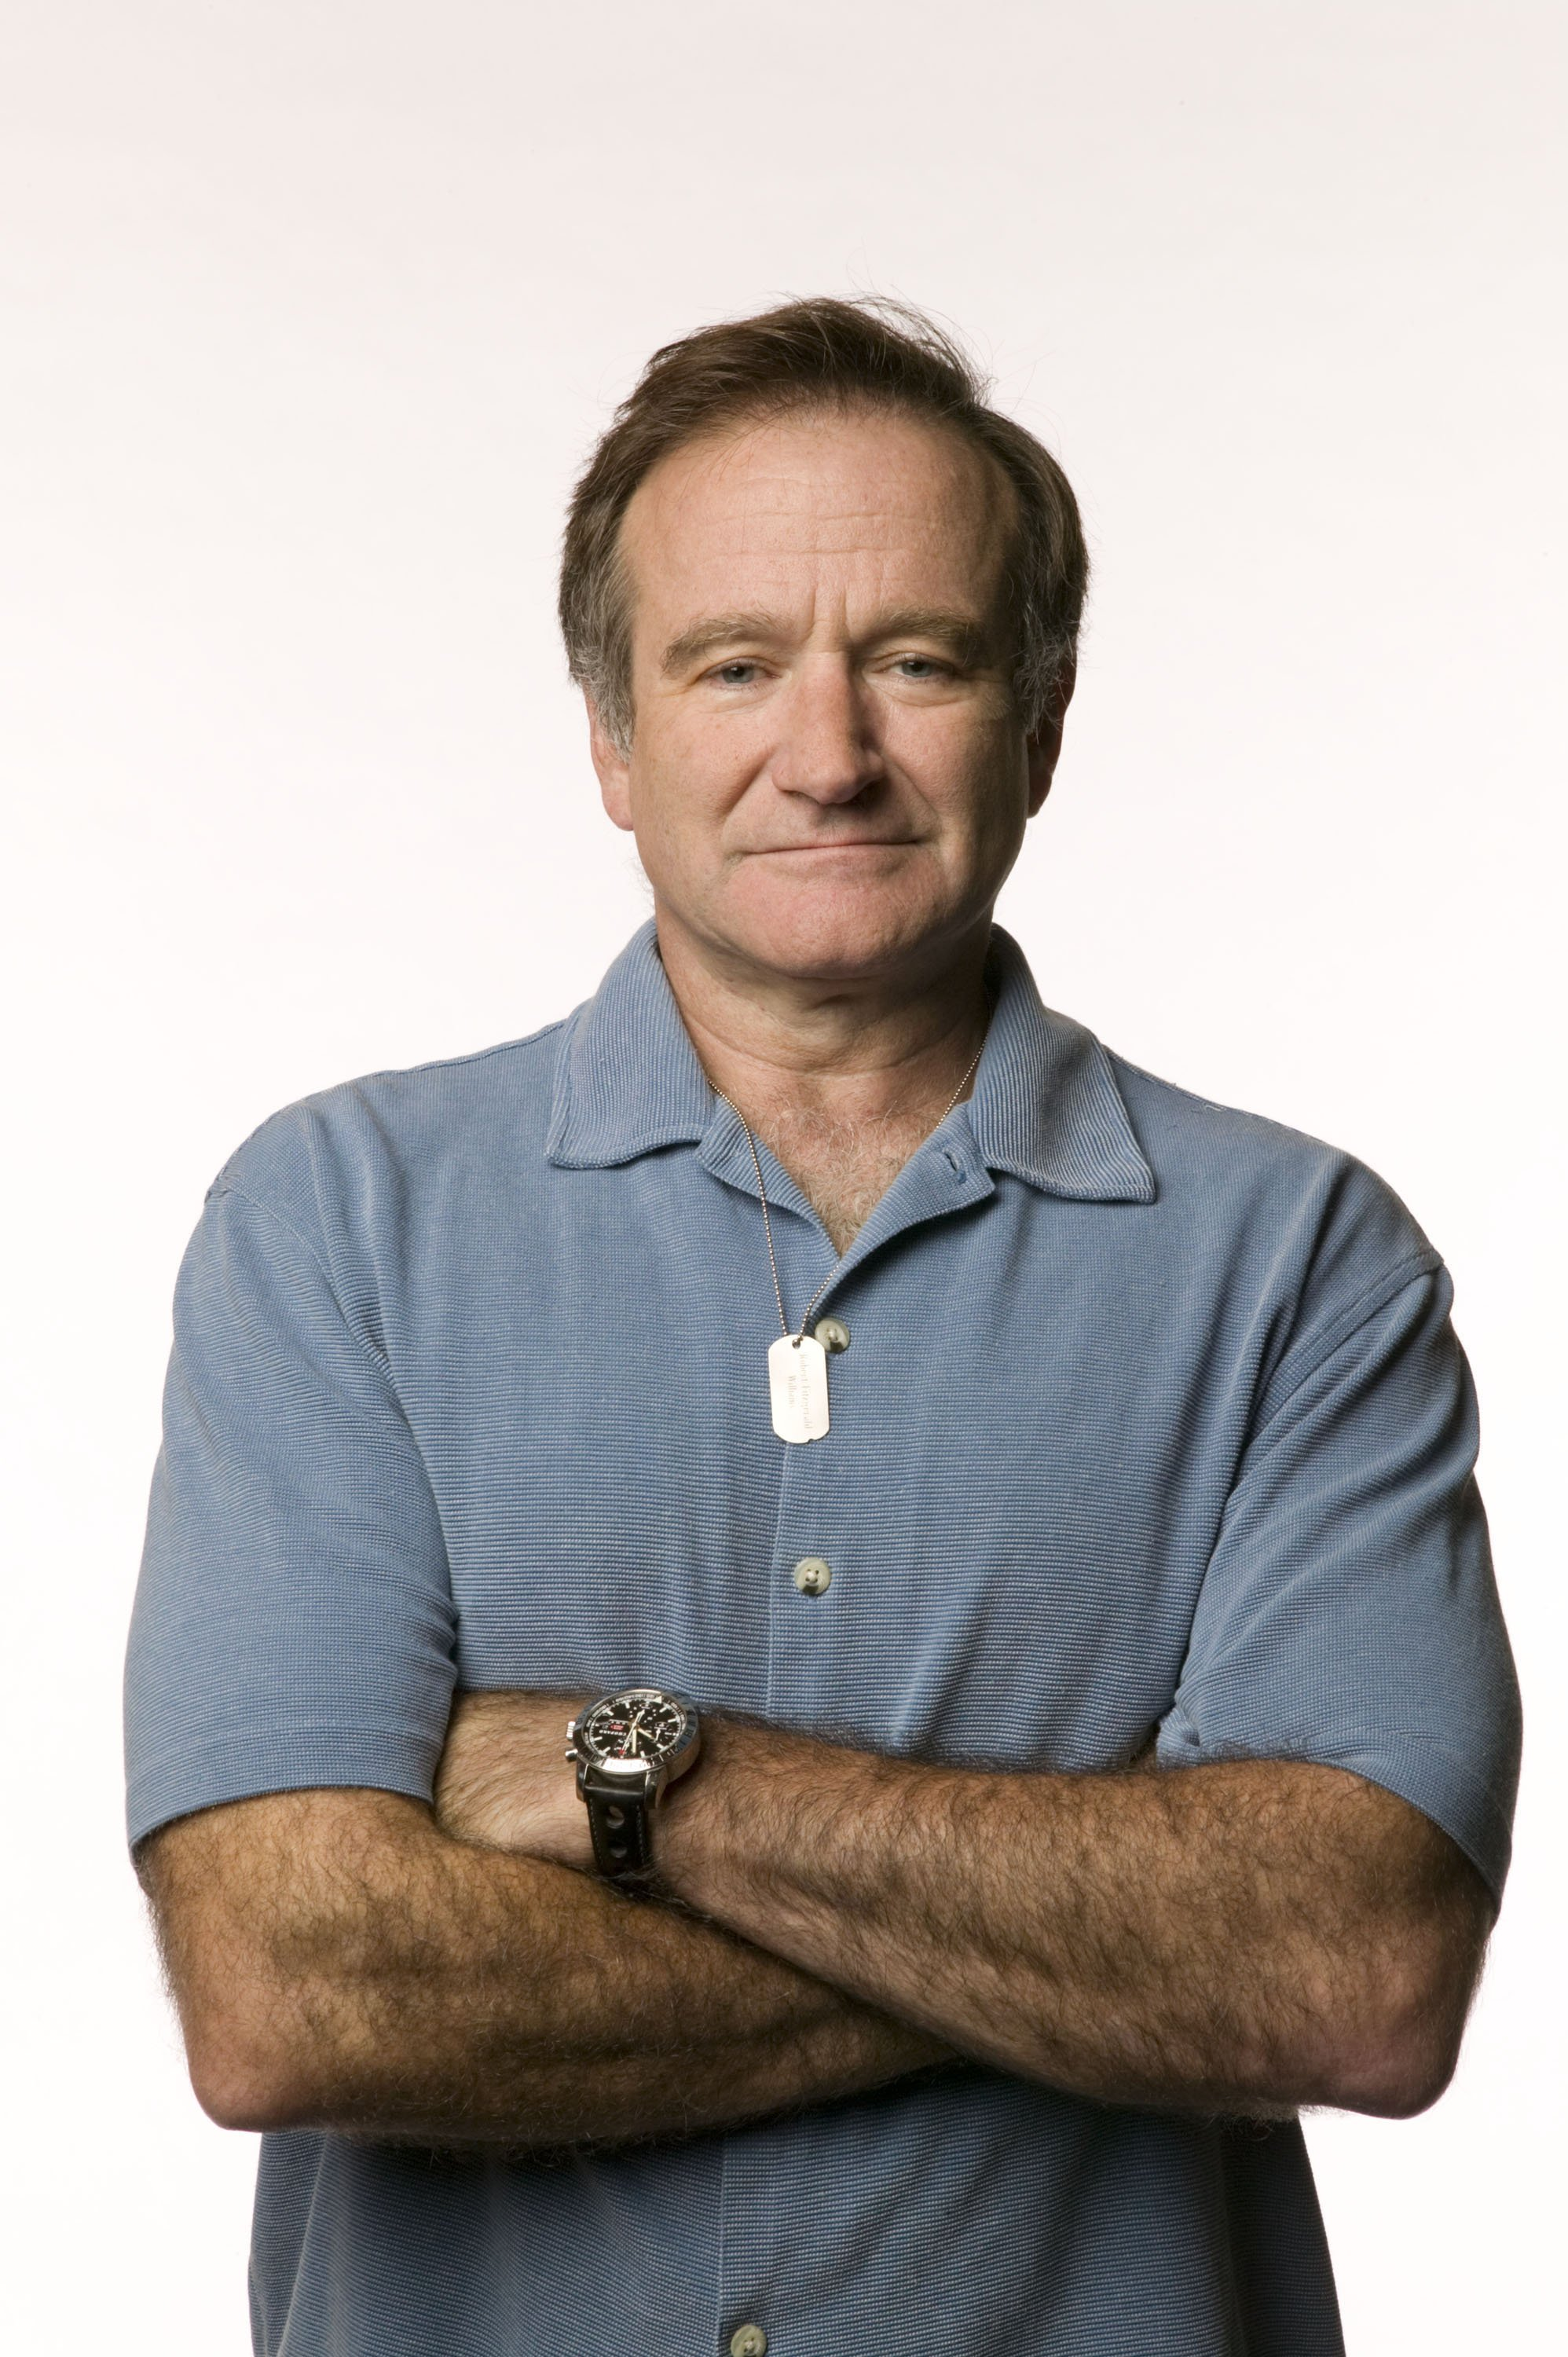 Image Credits: Getty Images / Caroline Schiff | Actor Robin Williams in a promotional portrait for the Search for the Cause campaign, which raises funds for cancer research.